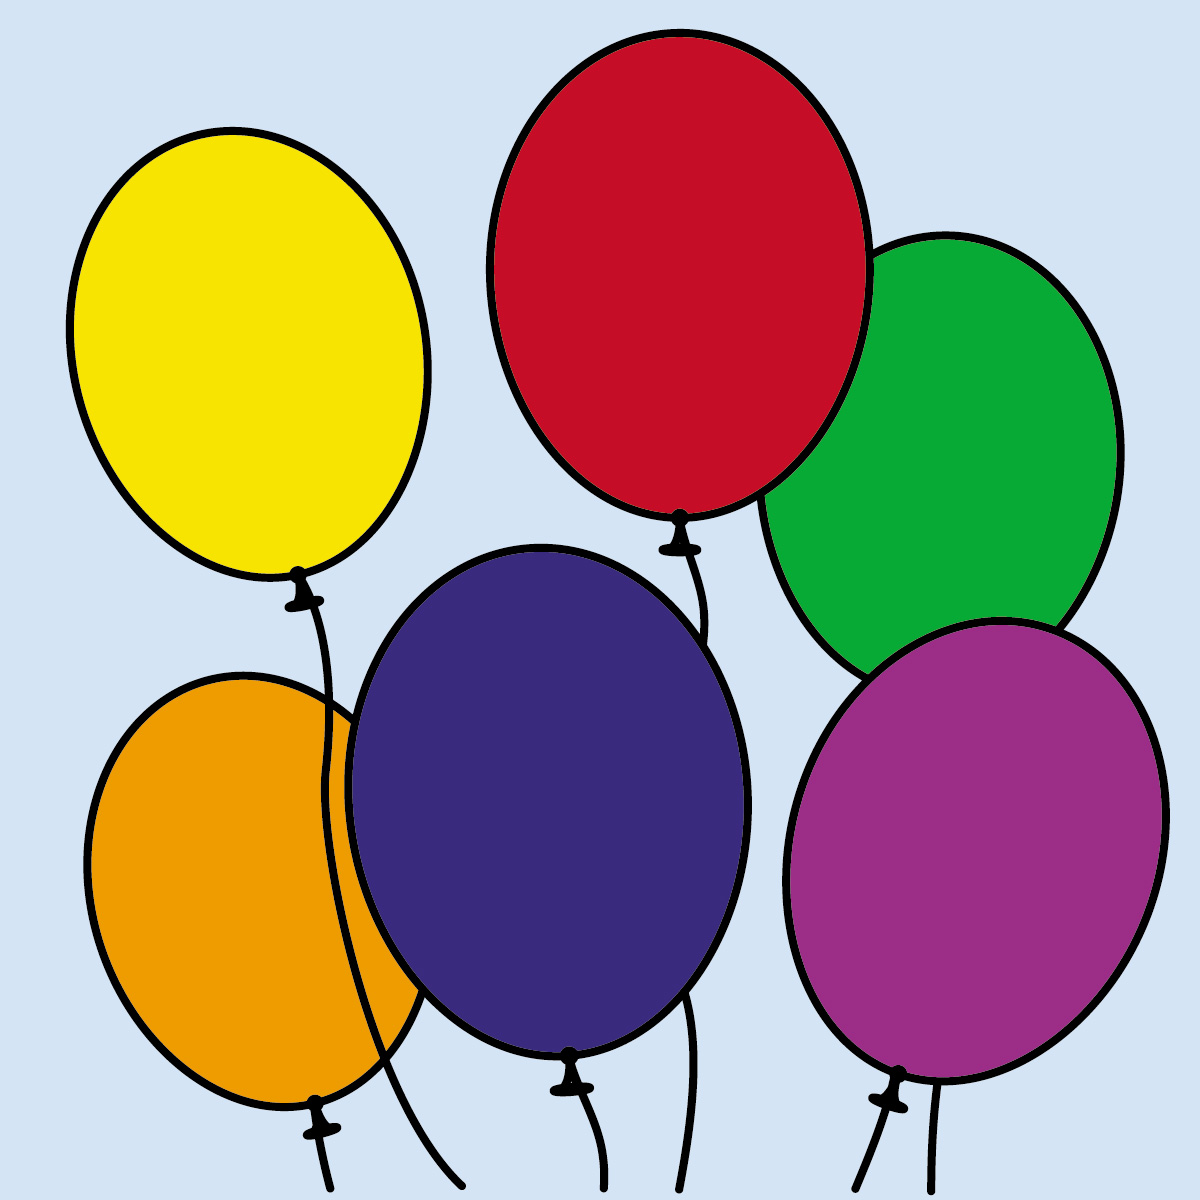 60 images of Balloons Clip Art Free . You can use these free cliparts ...